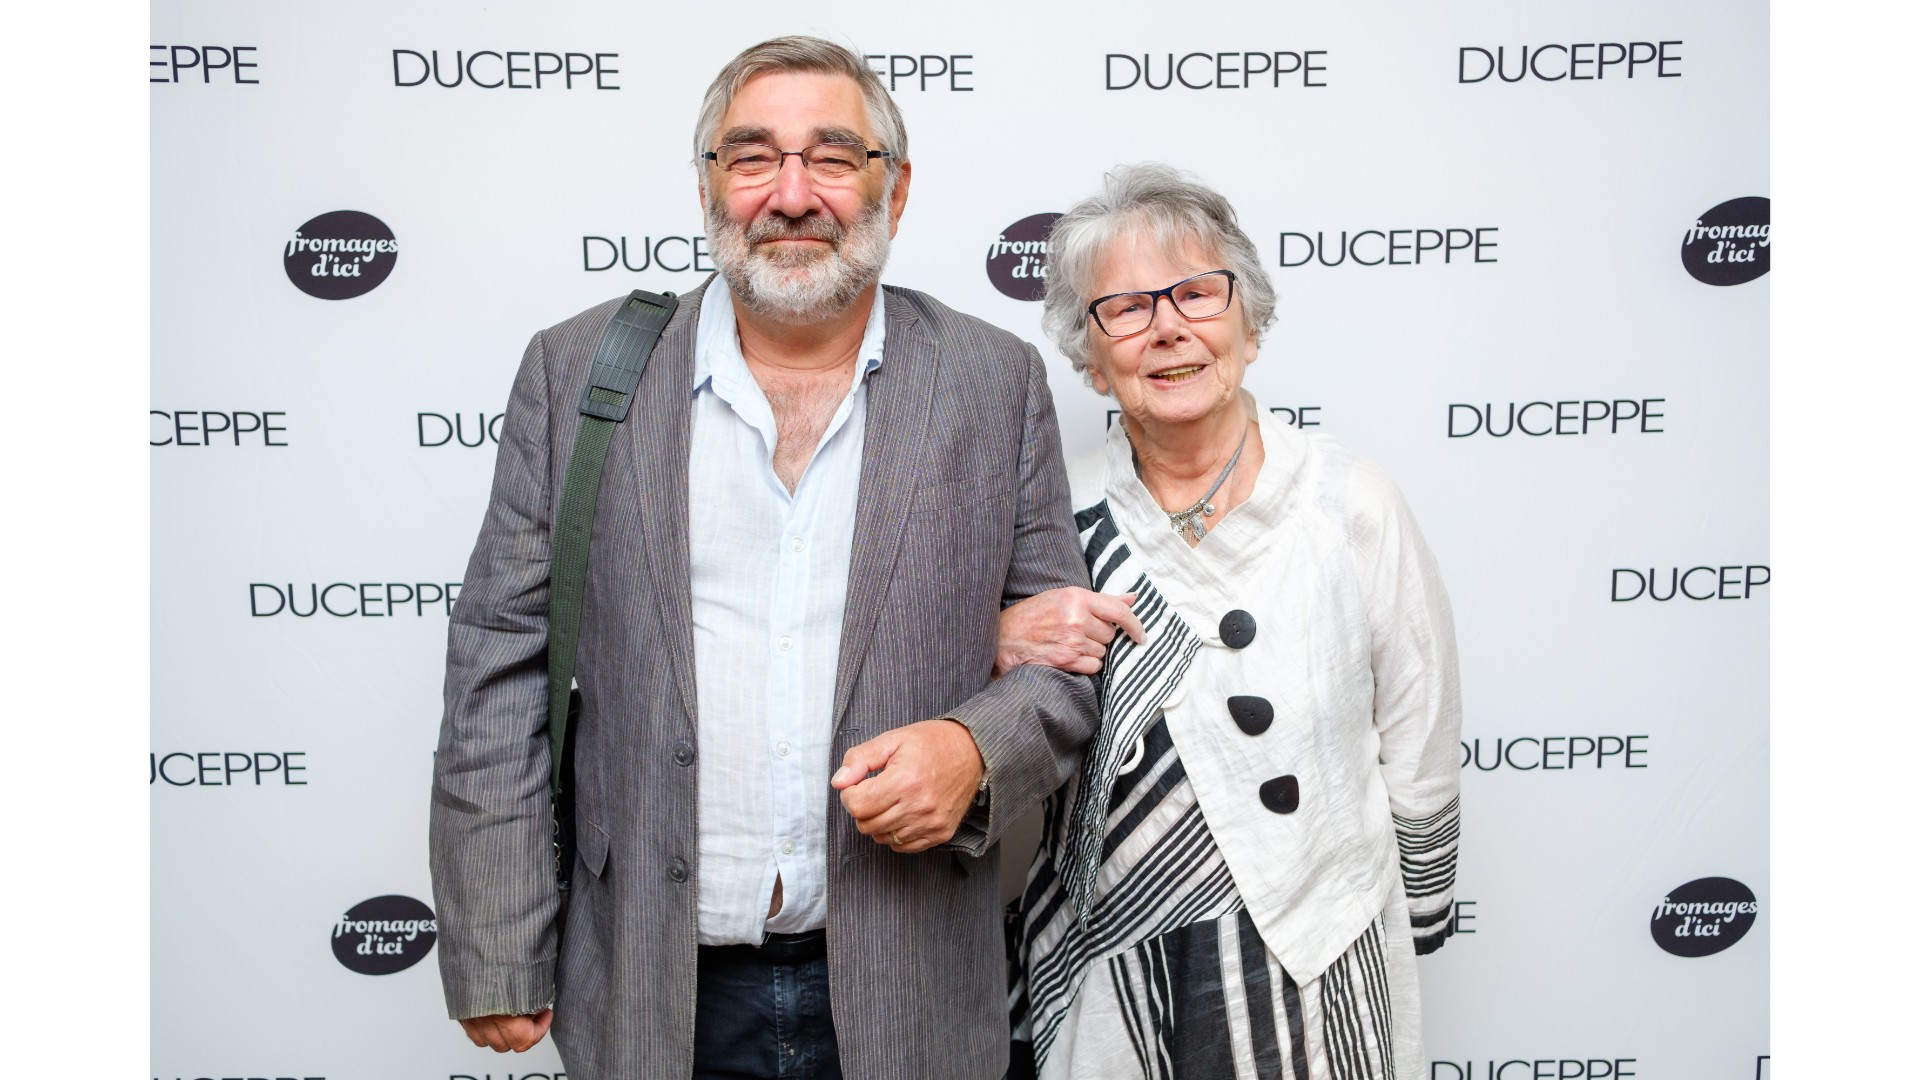 DUCEPPE_OSLO_Beatrice-Picard